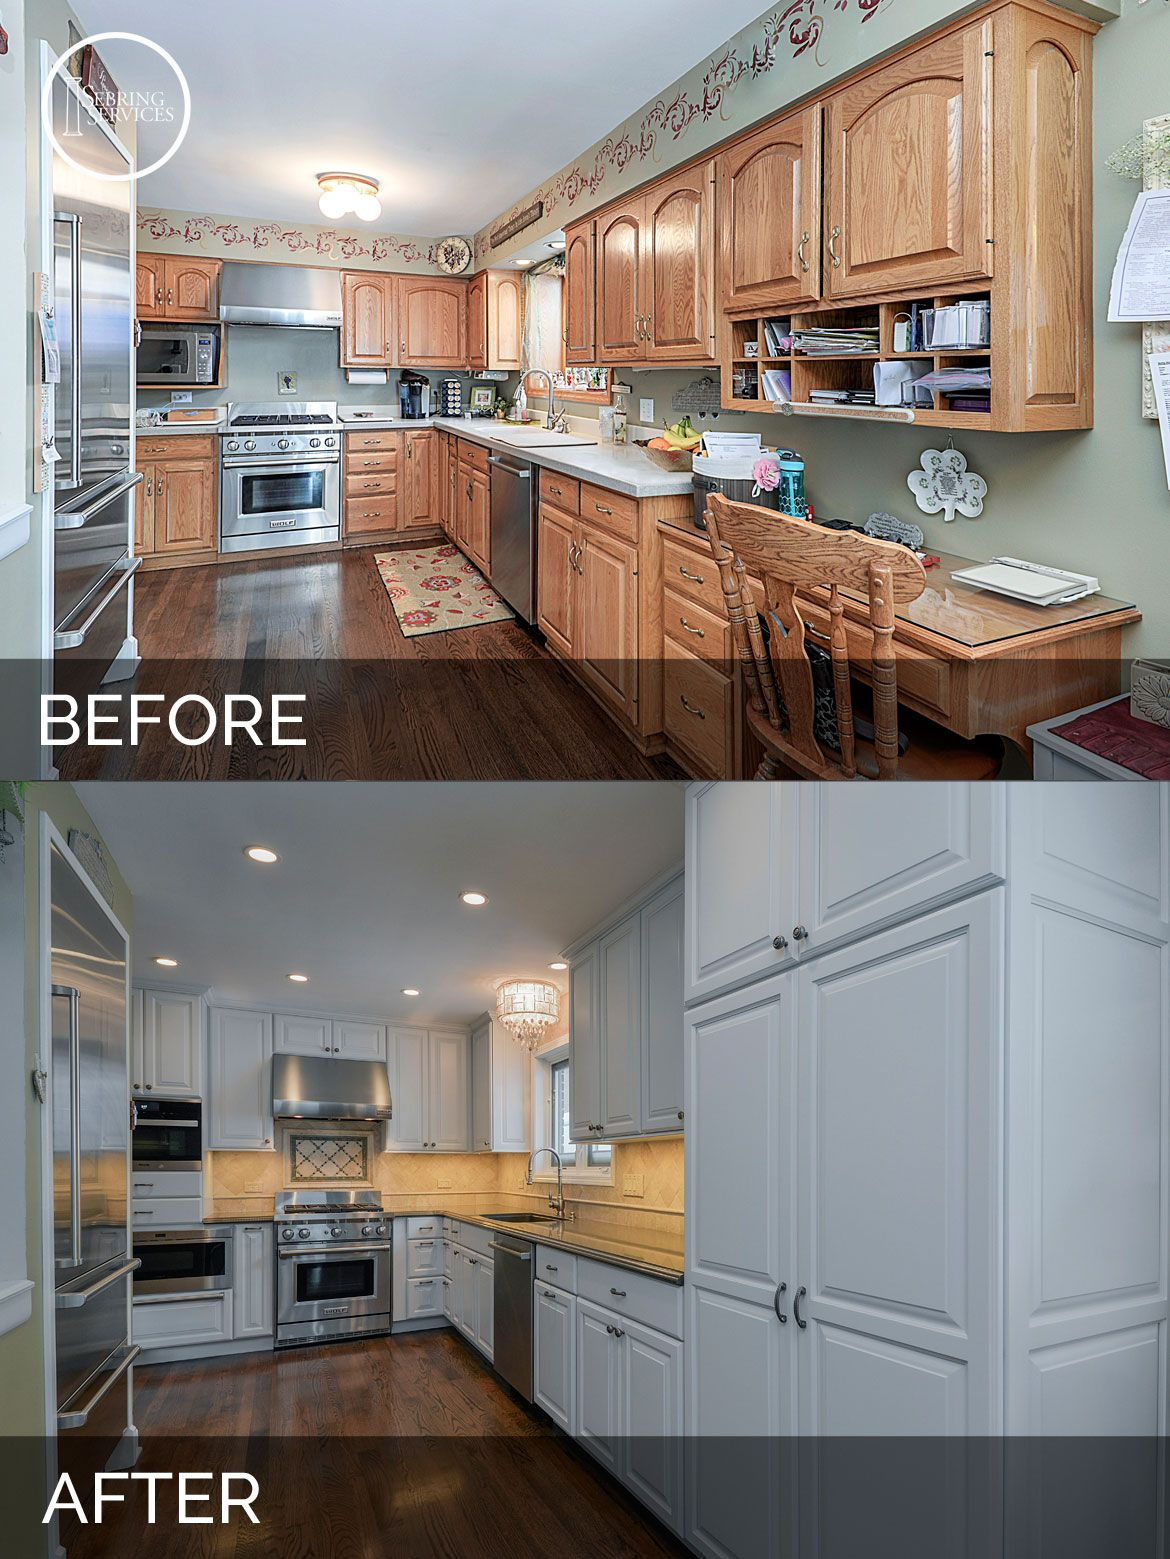 Mike & Betty's Kitchen Before & After Pictures In 2019